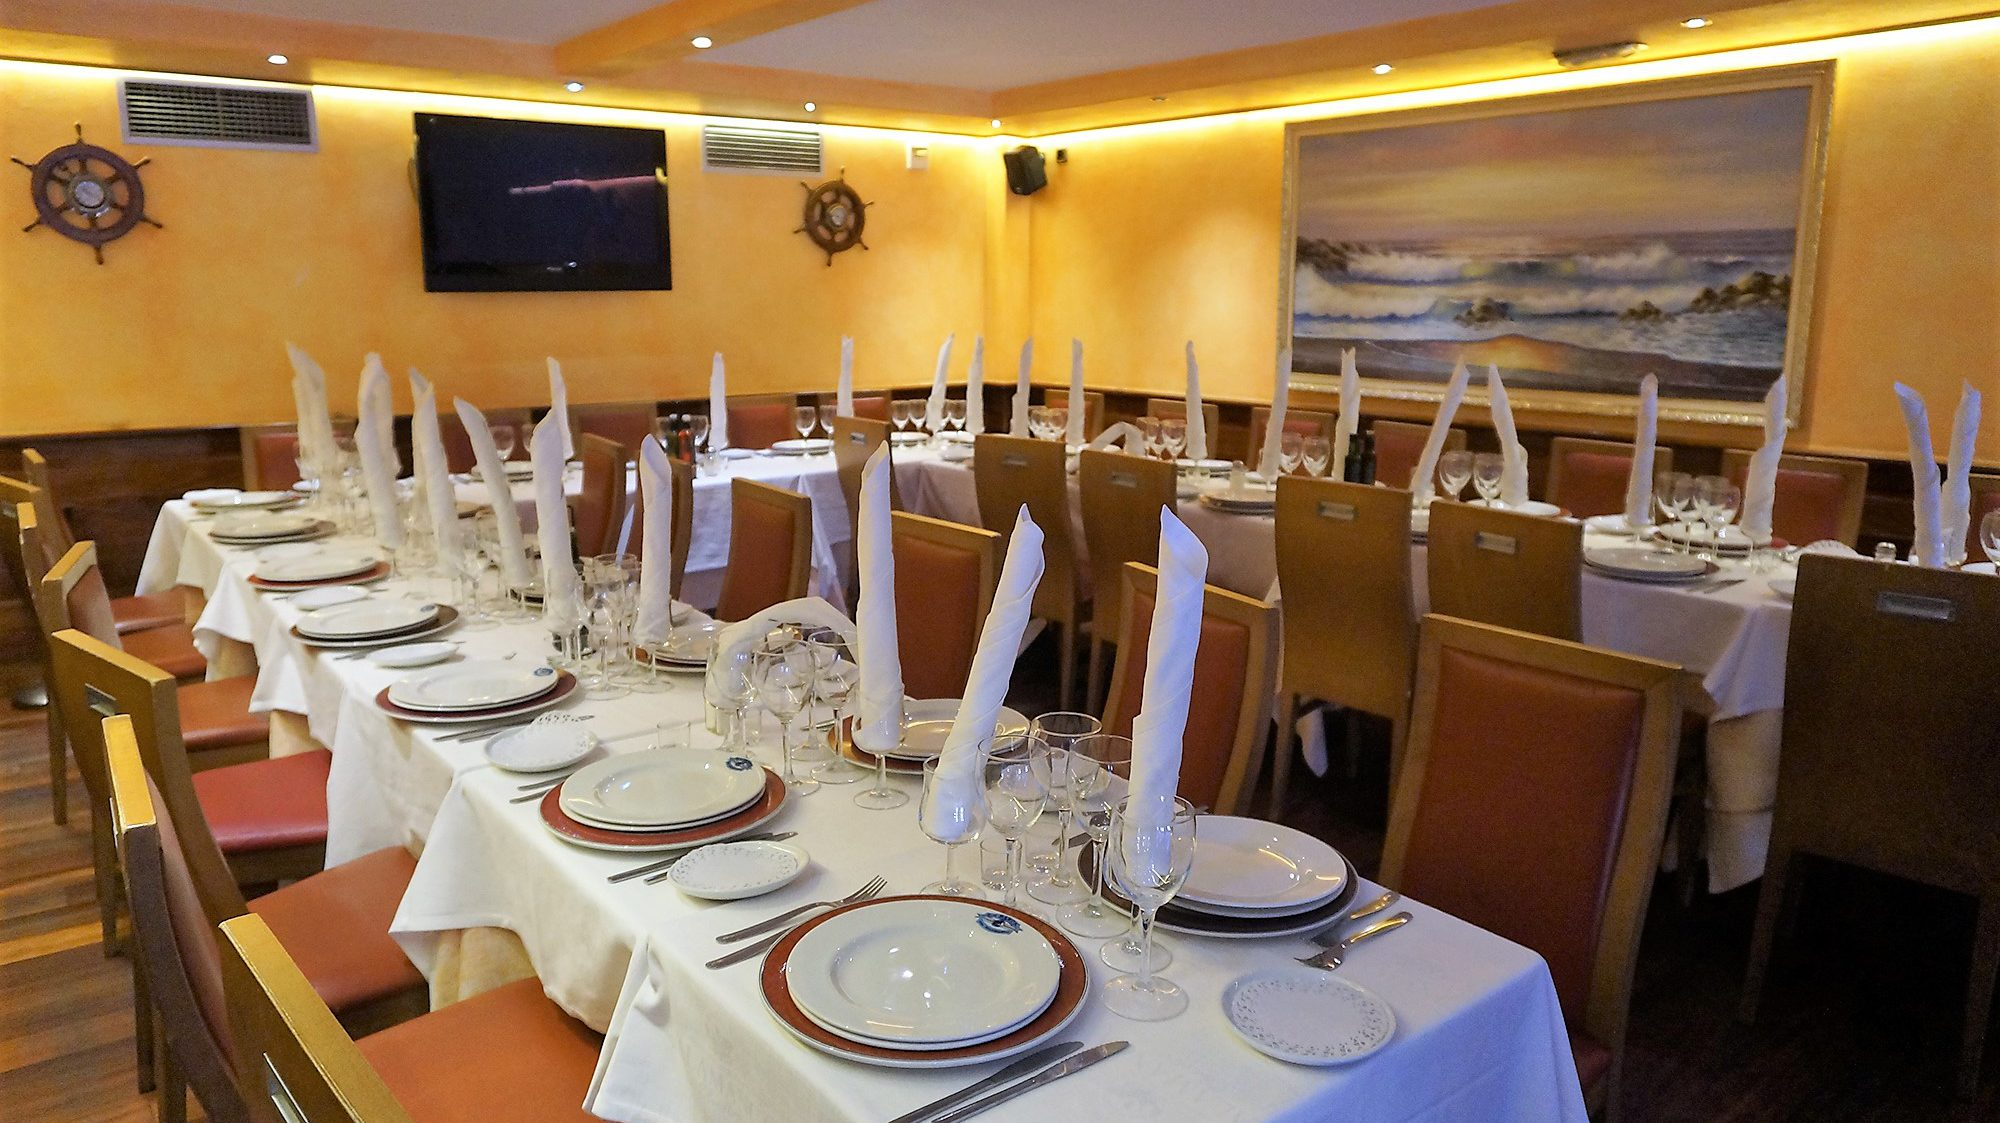 salon-privado-restaurante-barcelon-port-olimpic-salon-barcelona-la-barce-del-salamanca